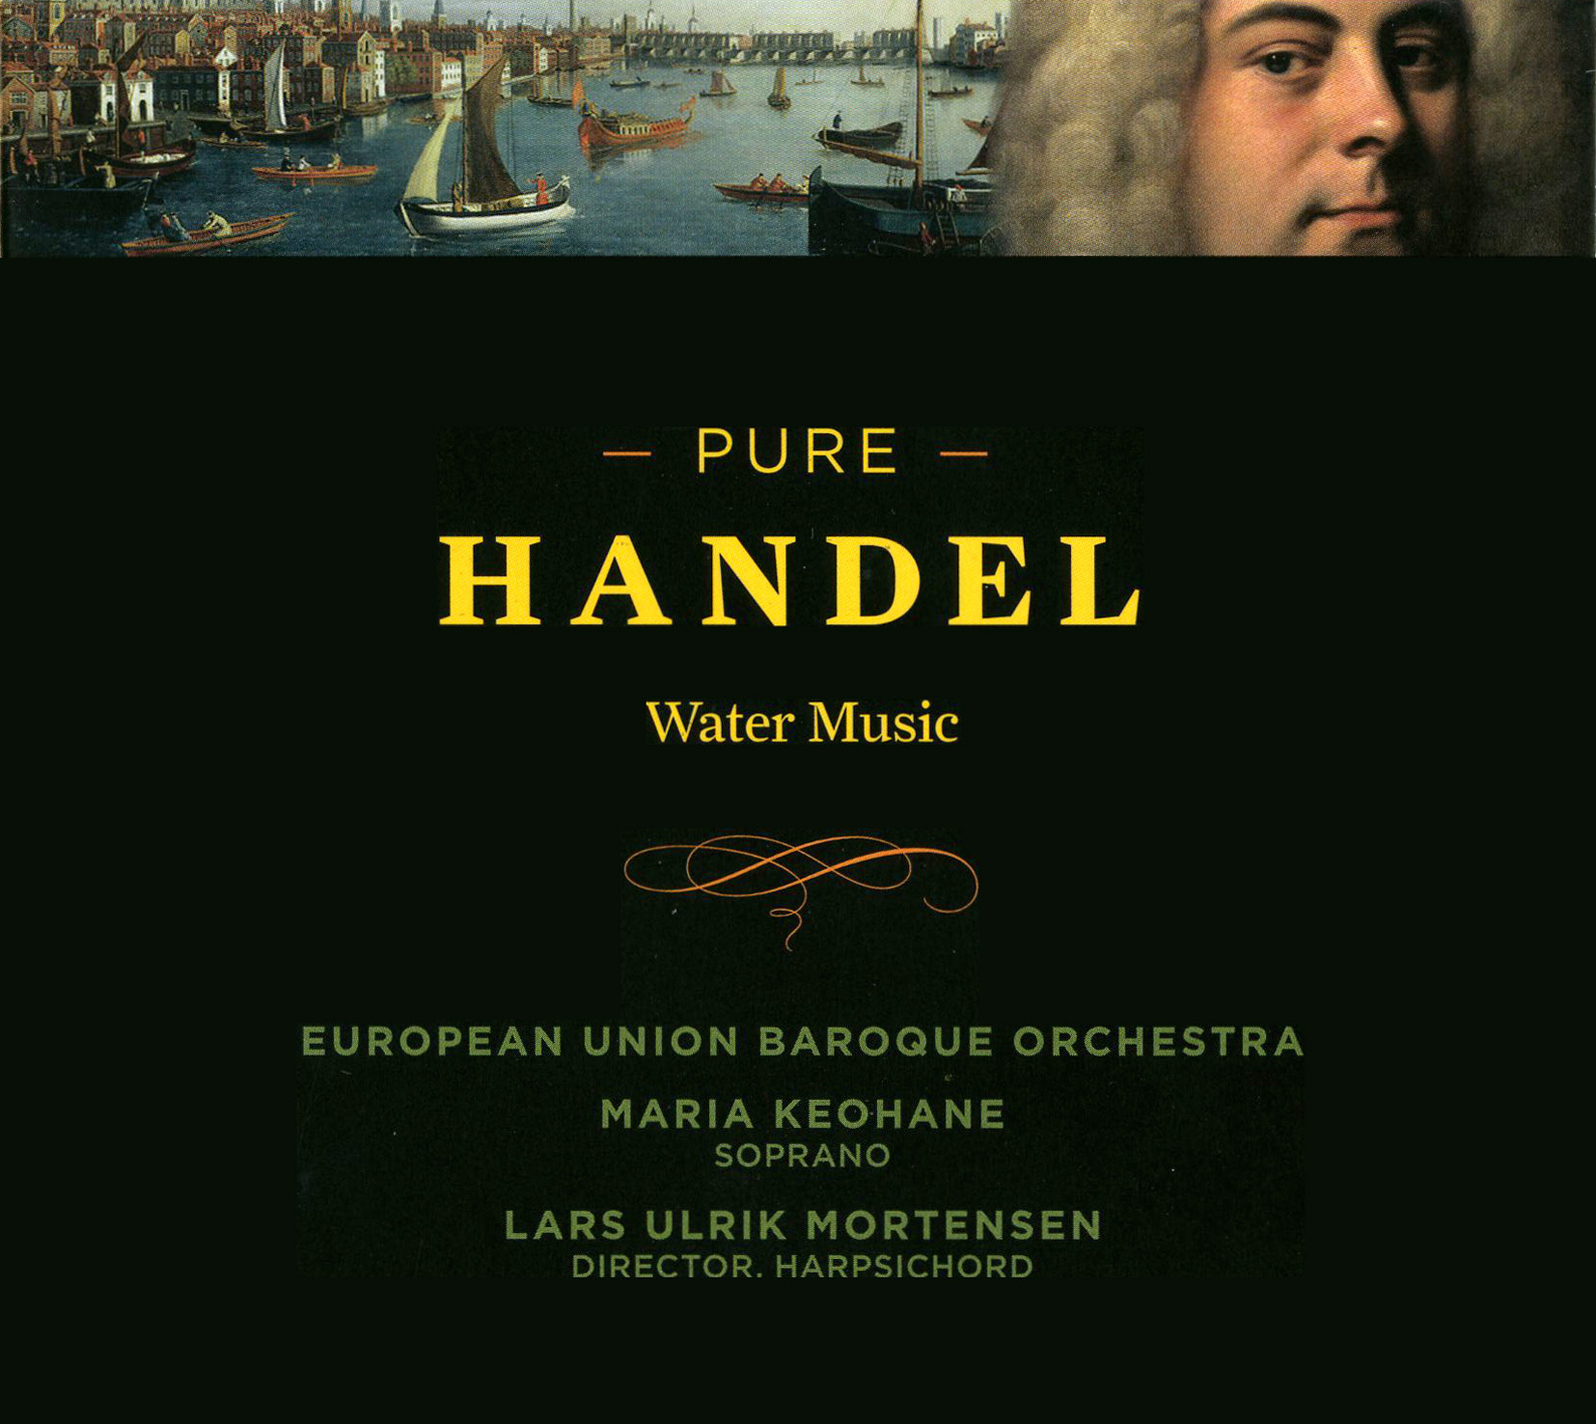 Water Music Suite No. 2 in F Major, HWV 348, Water Music Suite No. 2 in F Major, HWV 348: IV. Andante